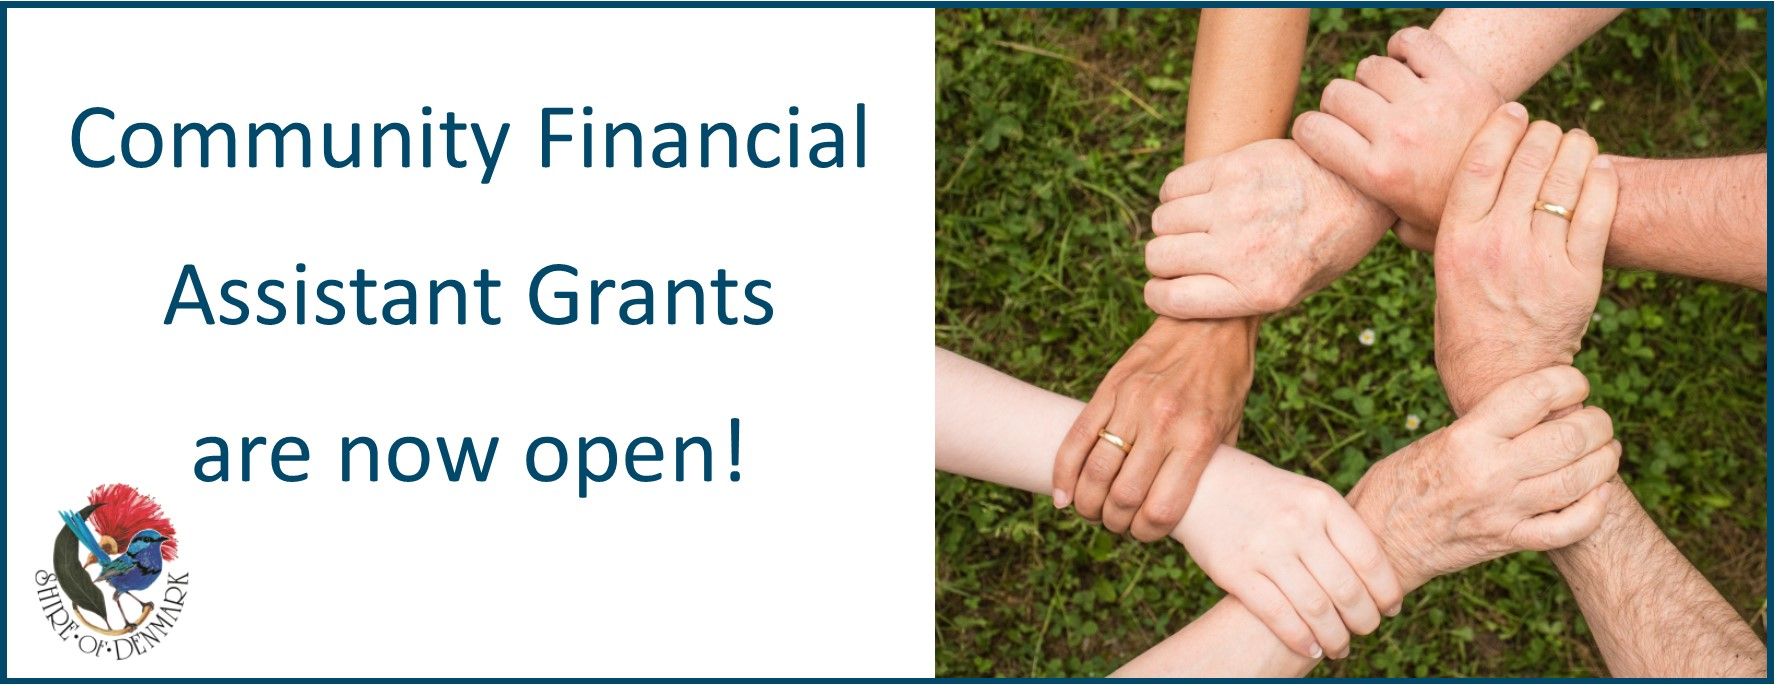 Image - Community Financial Assistance Grants Now Open!